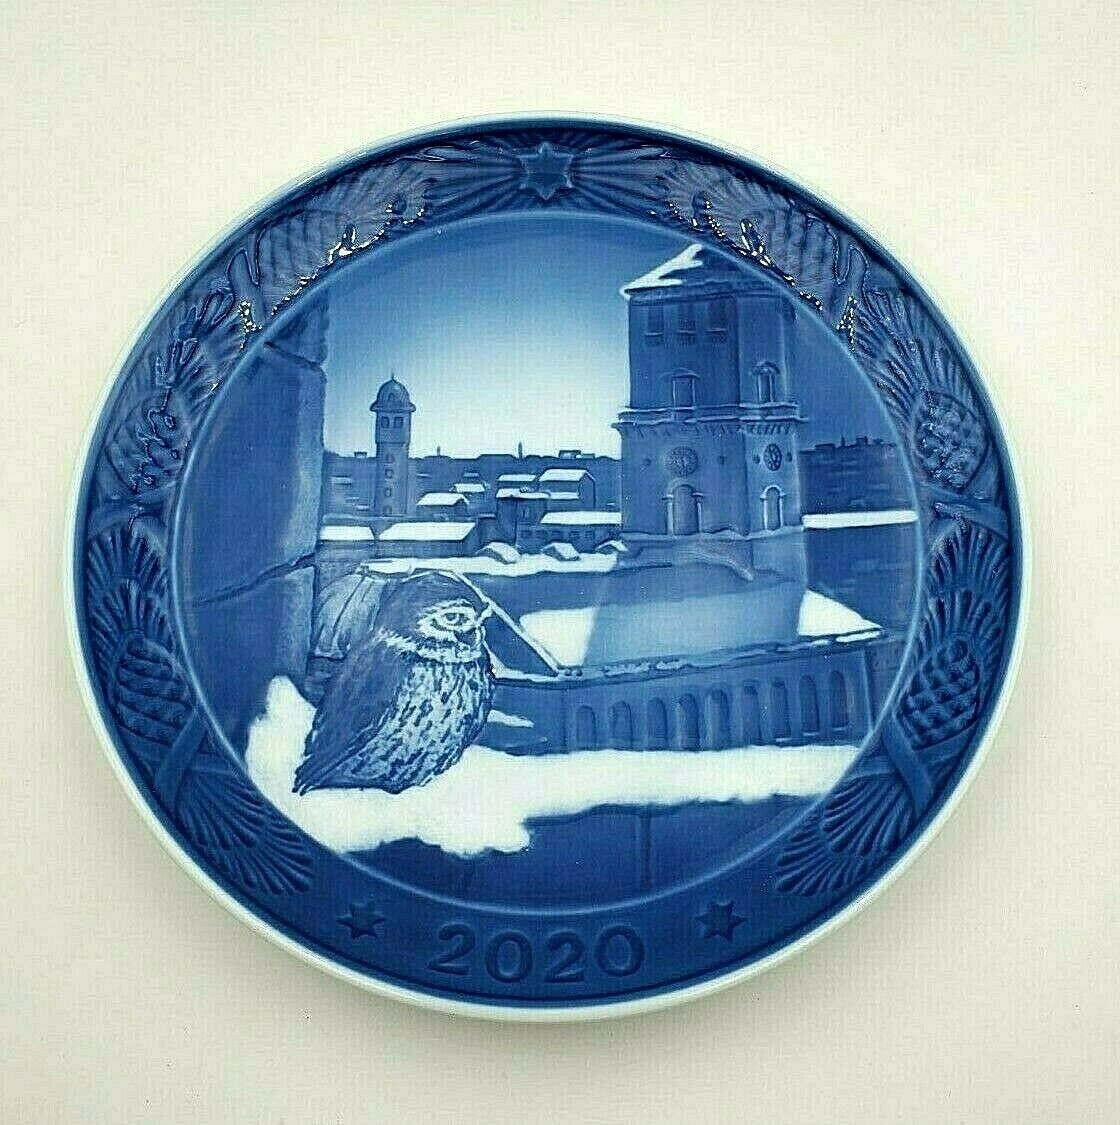 Primary image for  2020 Royal Copenhagen RC Christmas Plate  New in Box  Cathedral of Colpenhagen